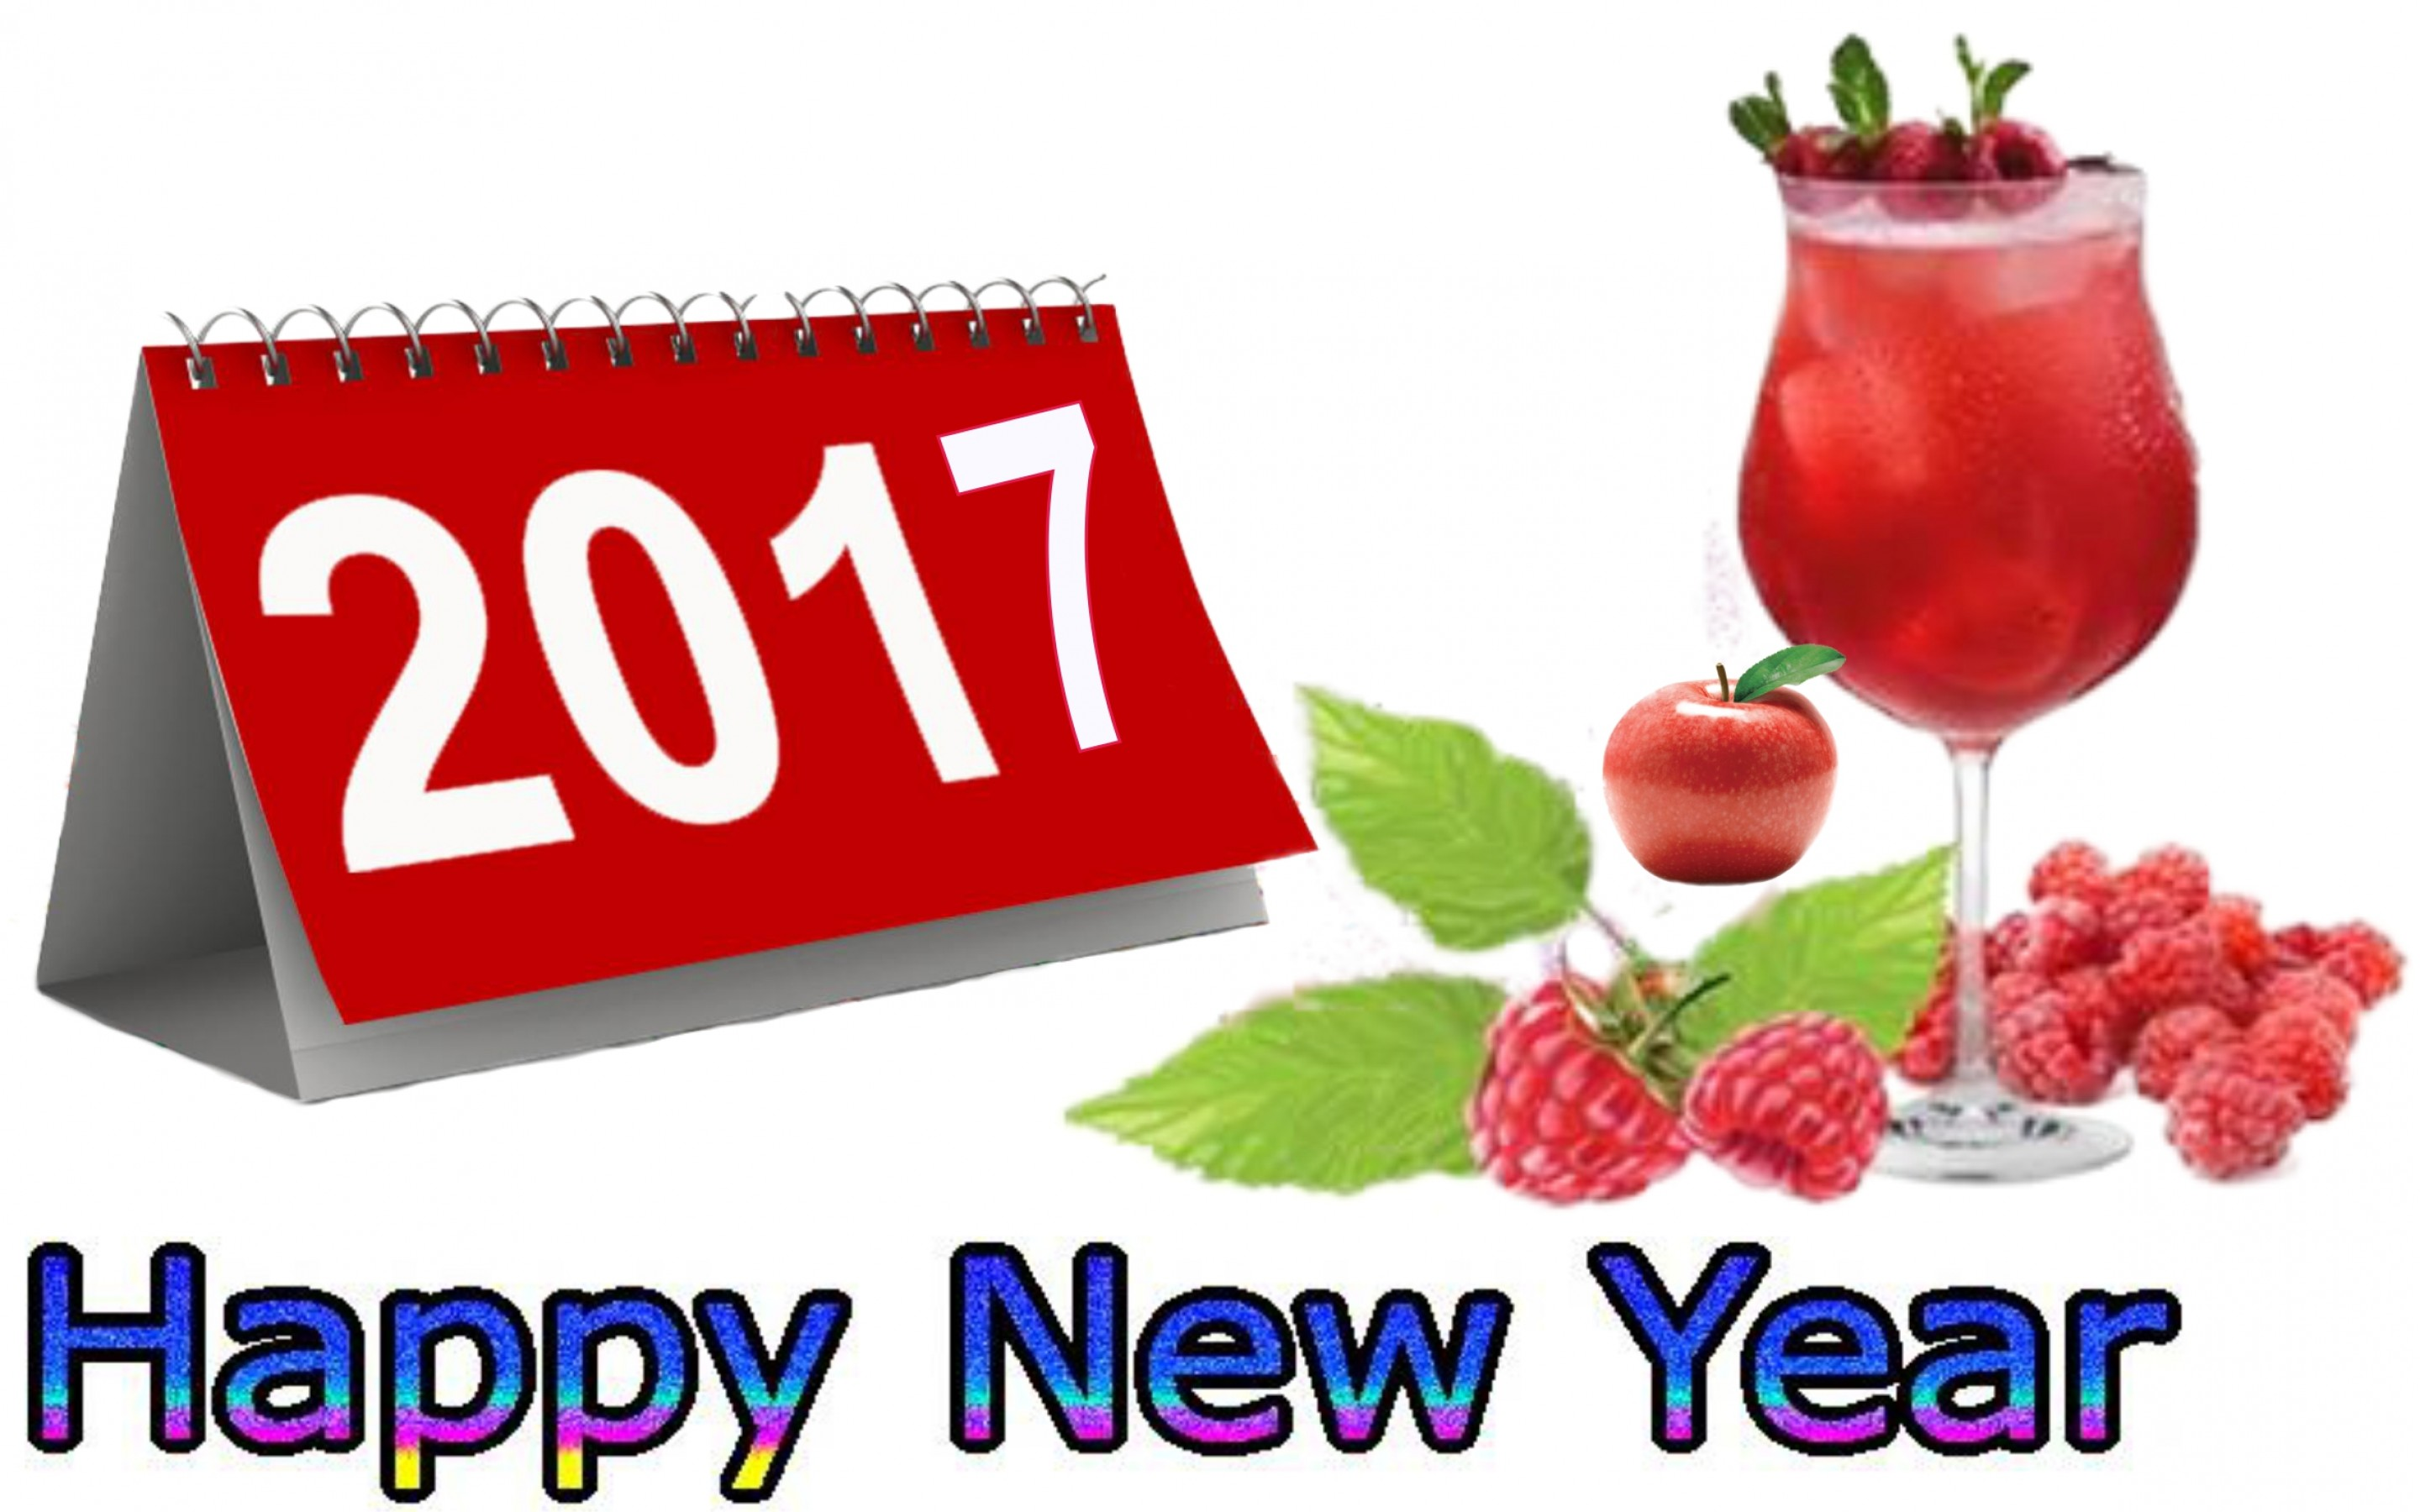 Happy New Year 2017 Calender Wallpaper HD - Happy New Year